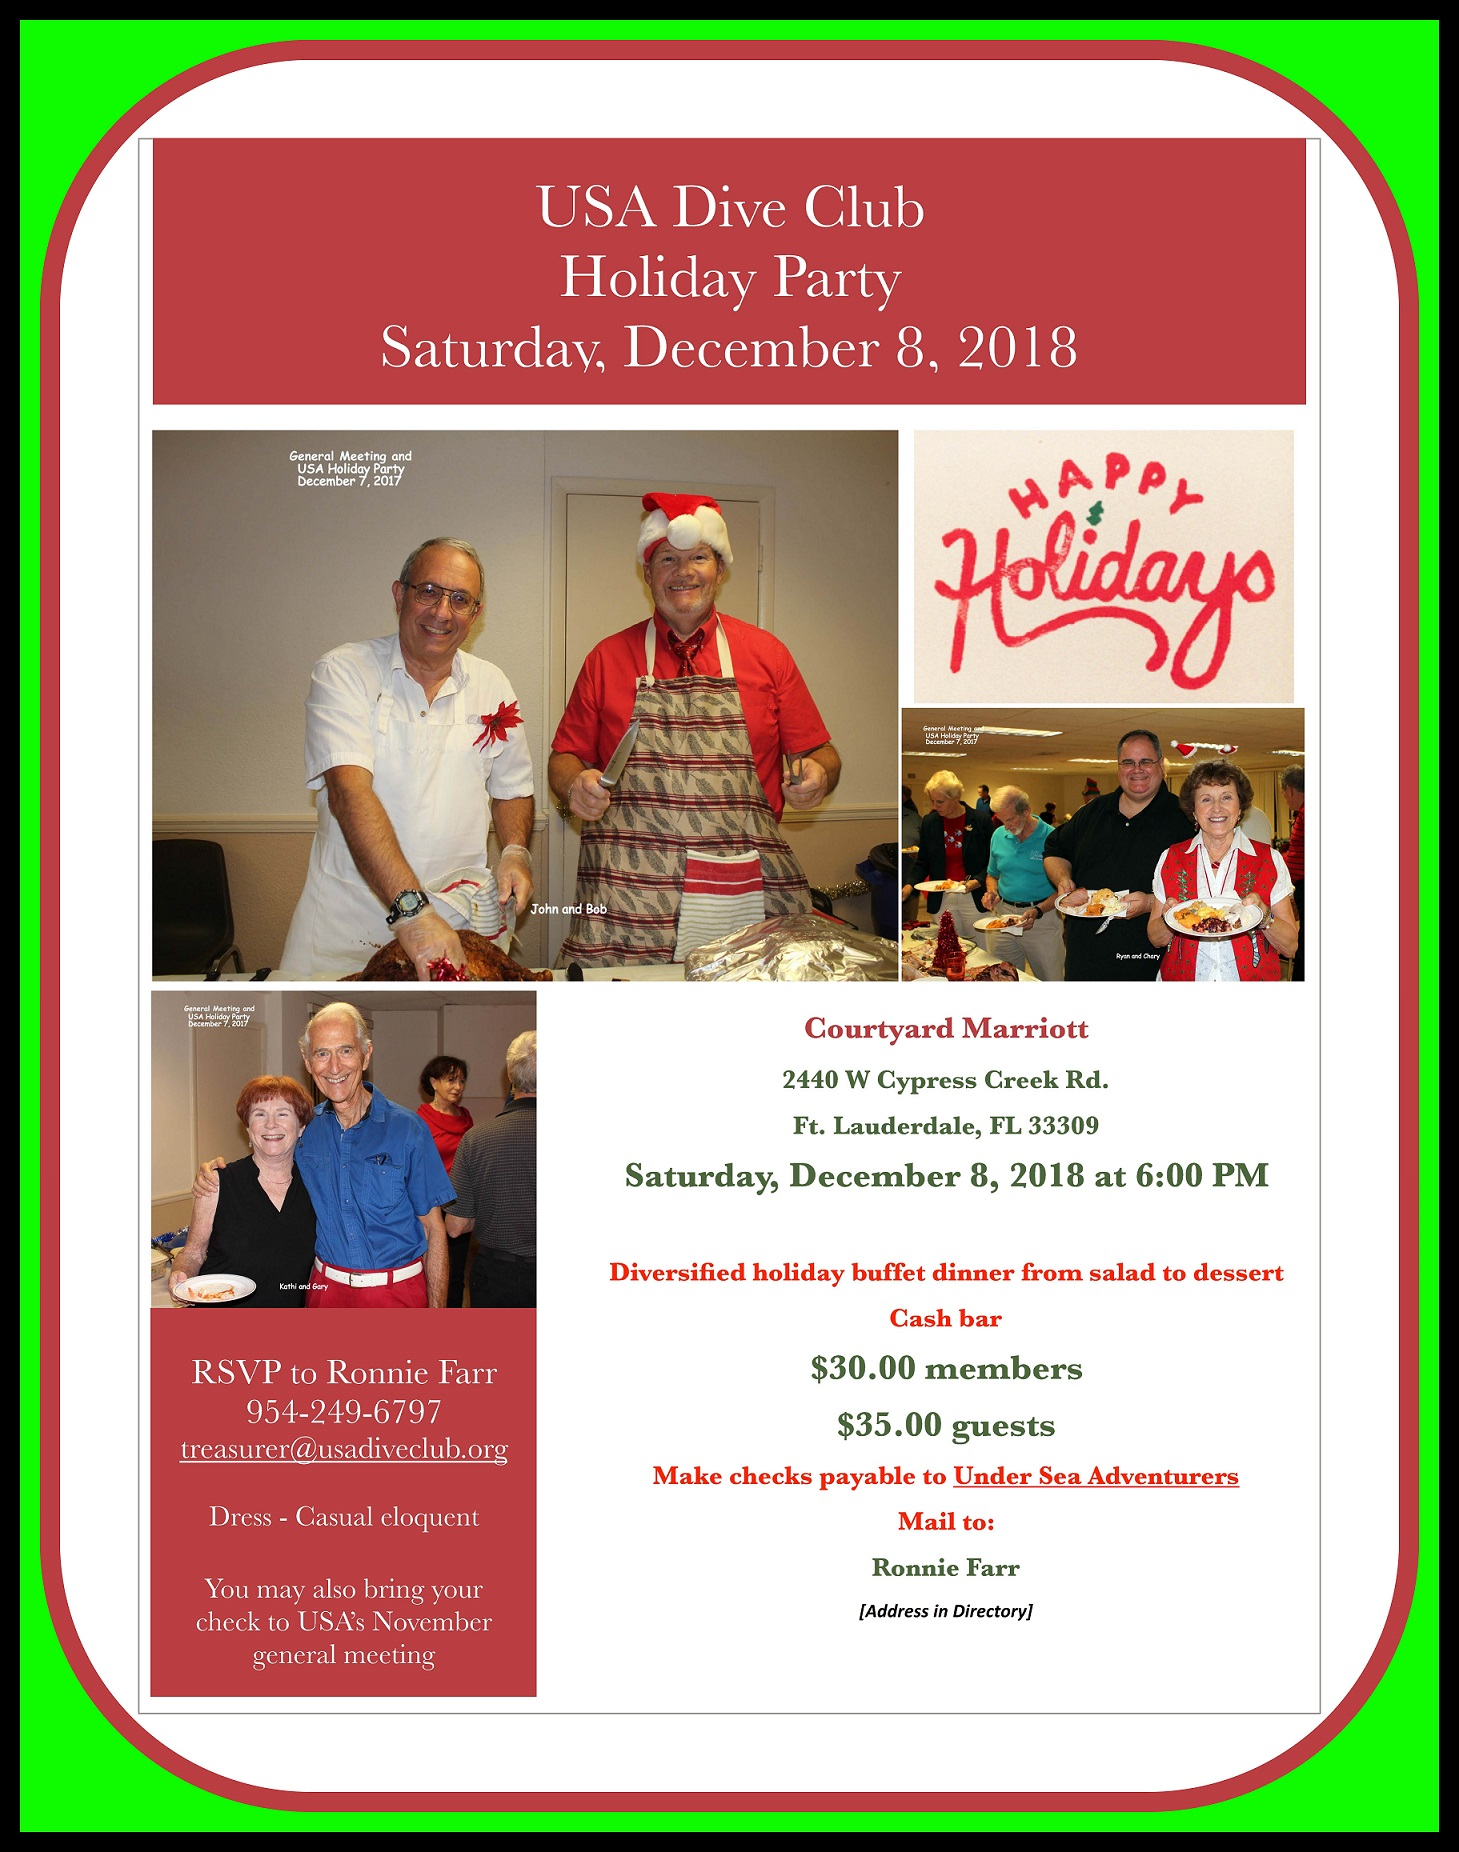 https://s3.amazonaws.com/usadiveclub-images/2018+12-08+USA+Holiday+Party+Invitation.jpg